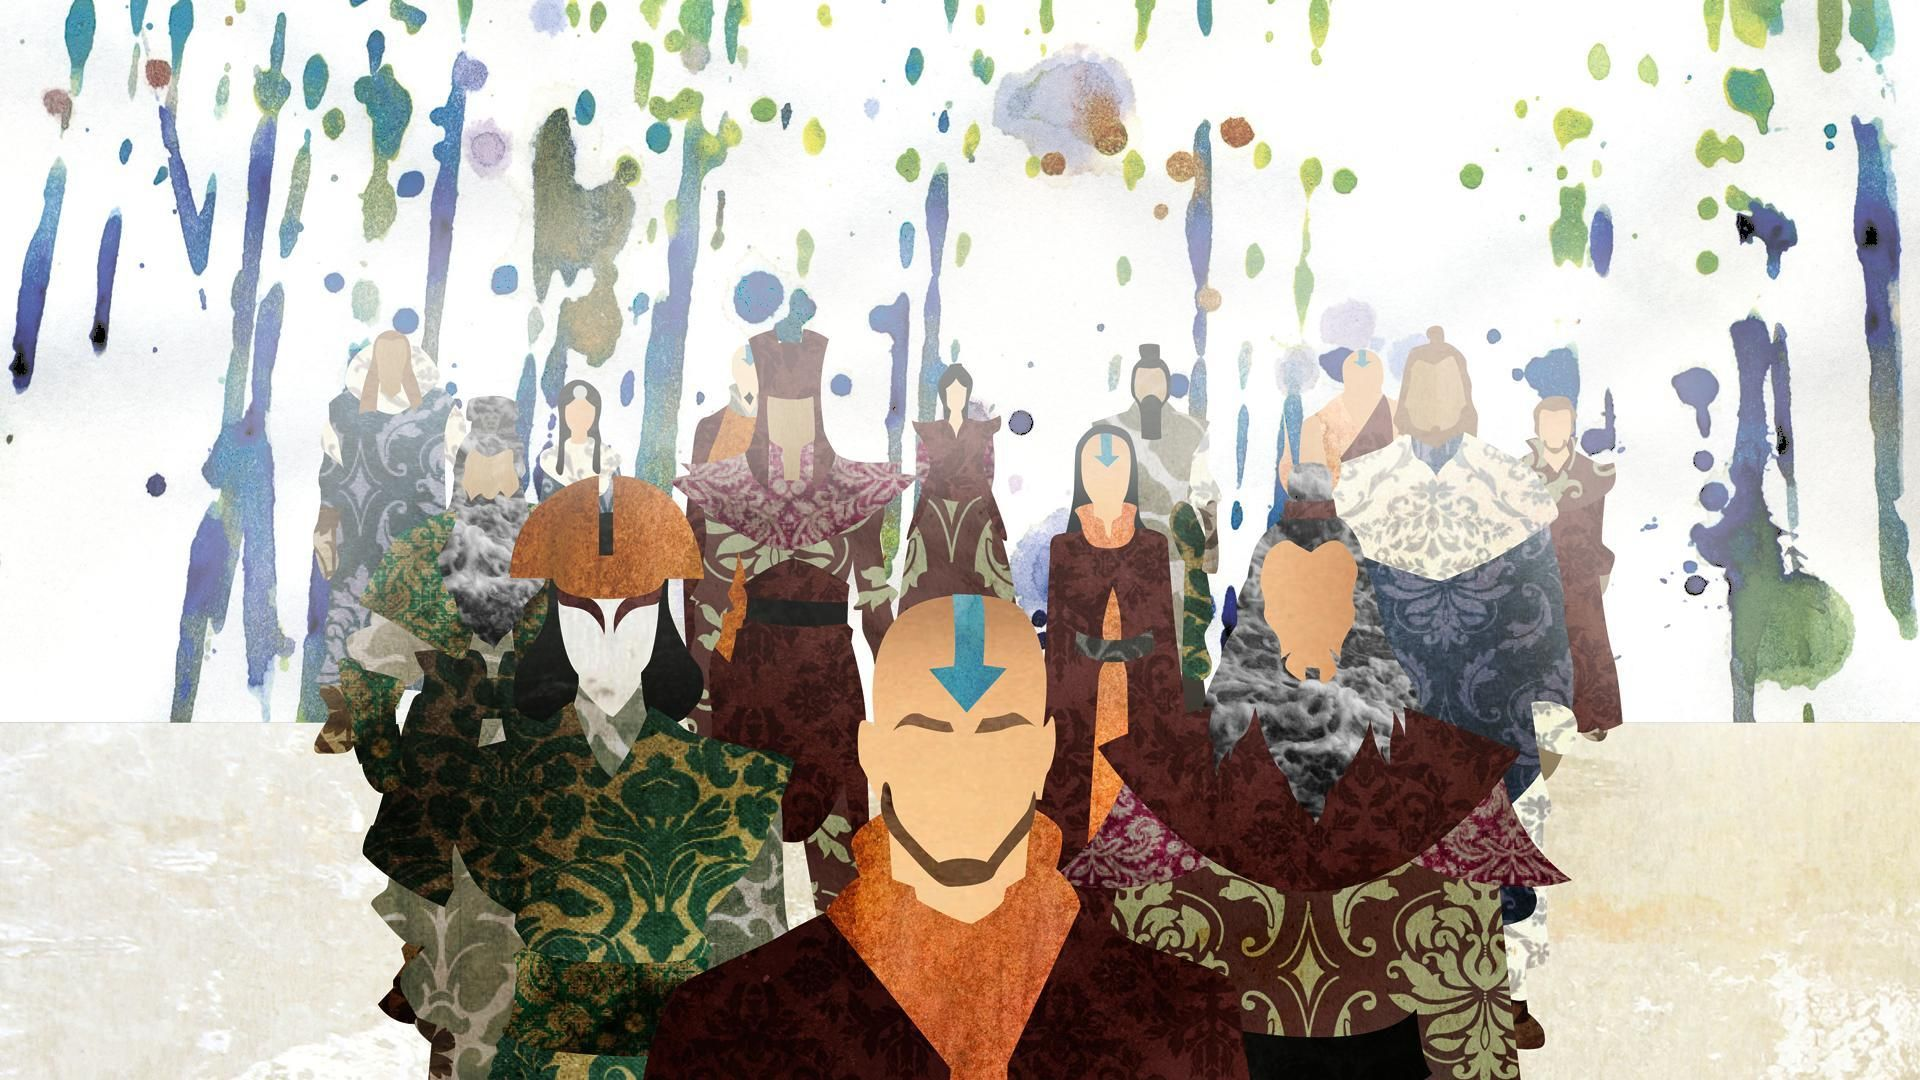 Avatar The Last Airbender Wallpaper Mac Avatar Hava Bukucu Avatar Sanat